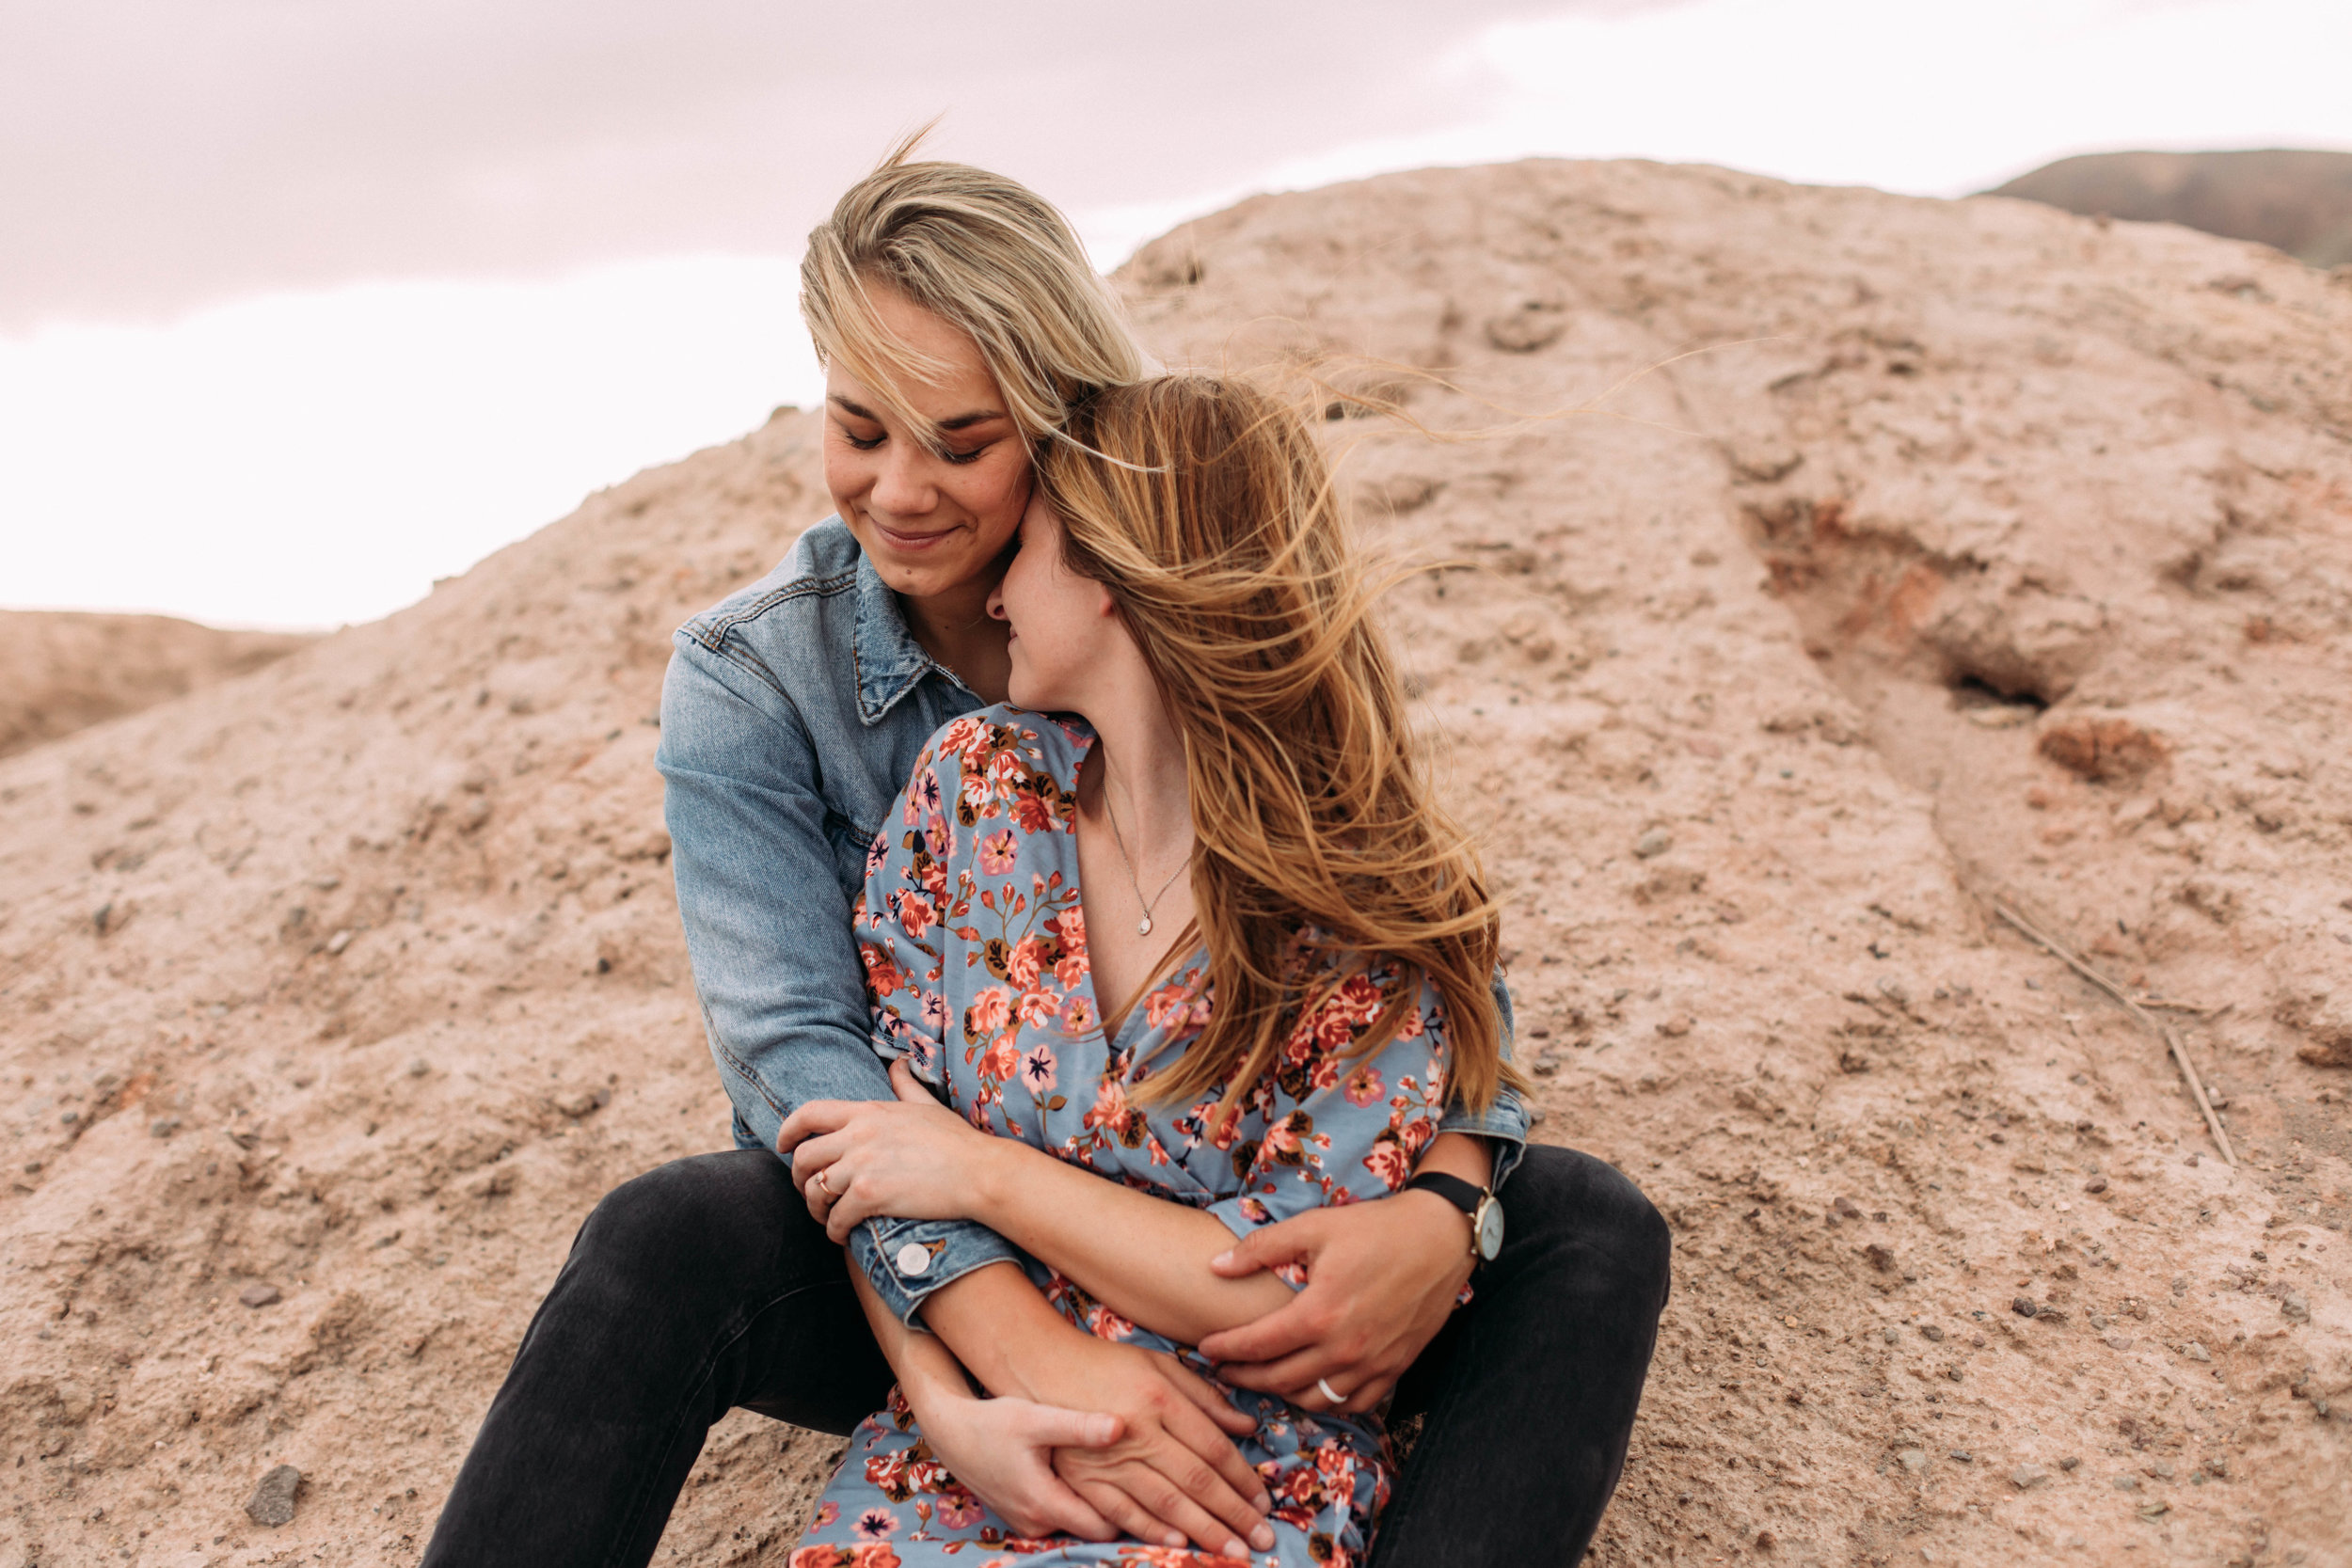 Brenna + Taylor | Ashlyn Savannah Photo | Las Vegas Photographer-95.jpg